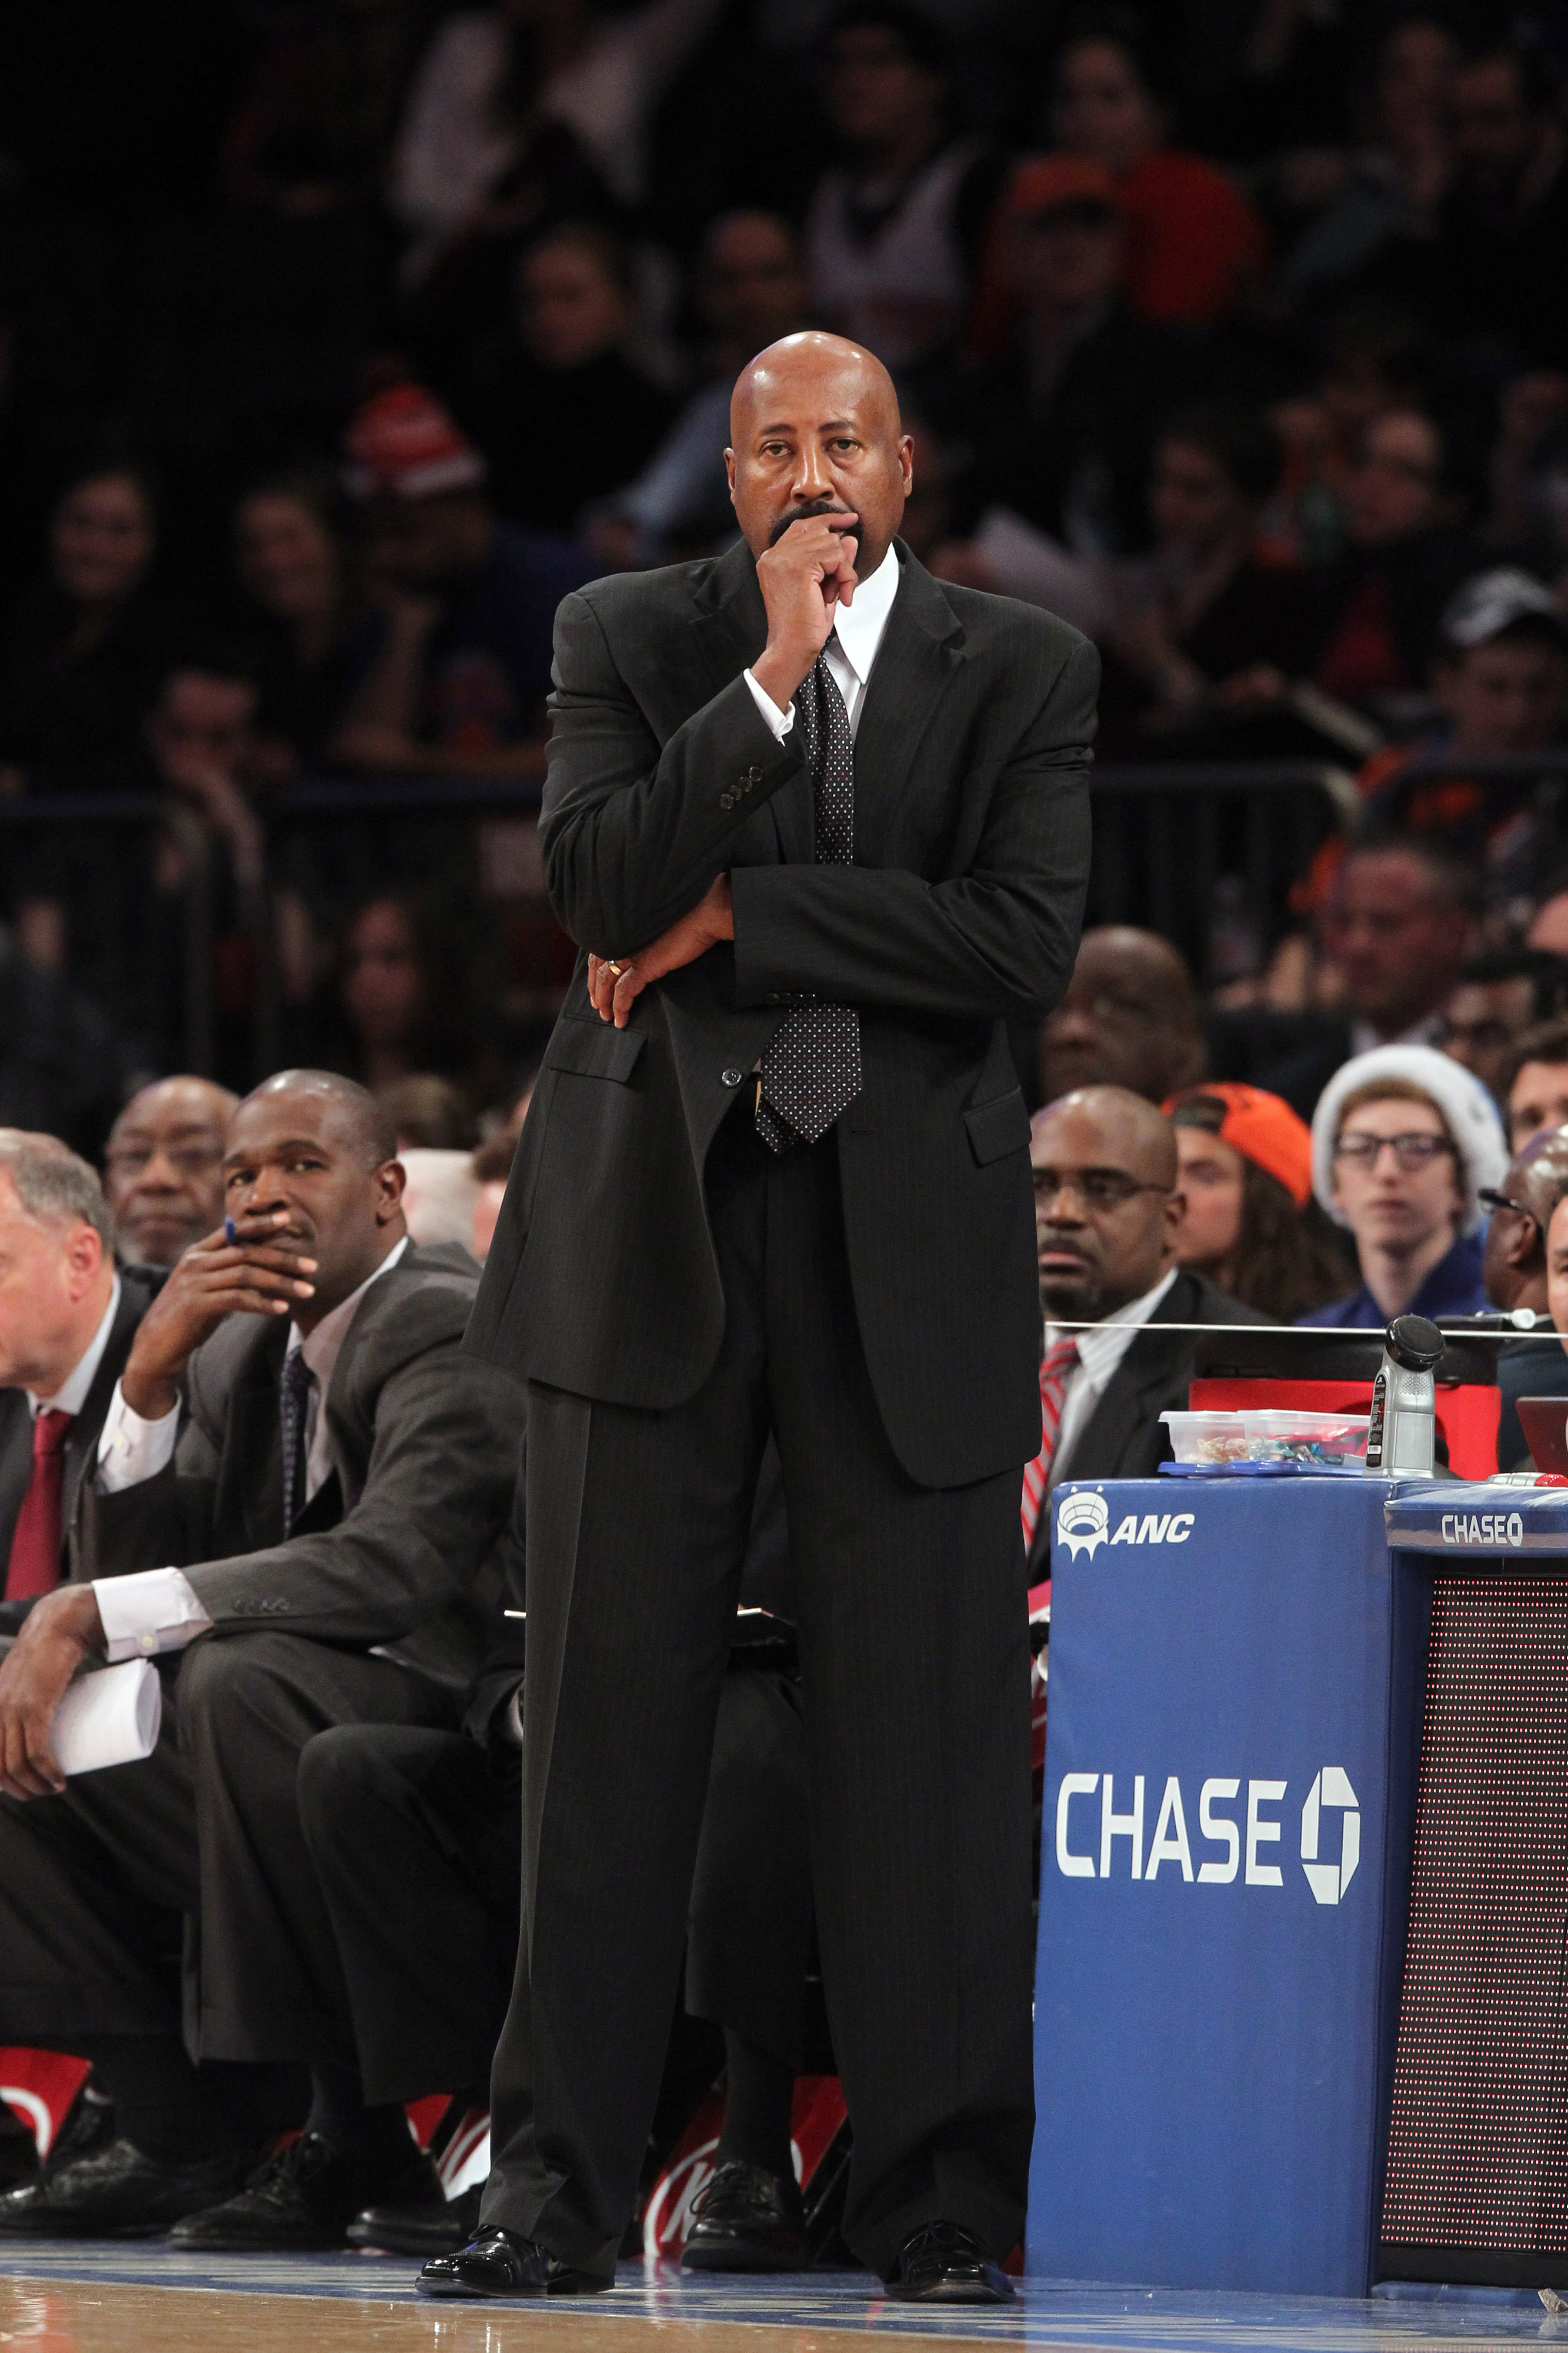 Mike Woodson rumored to coach Indiana if fired by Knicks